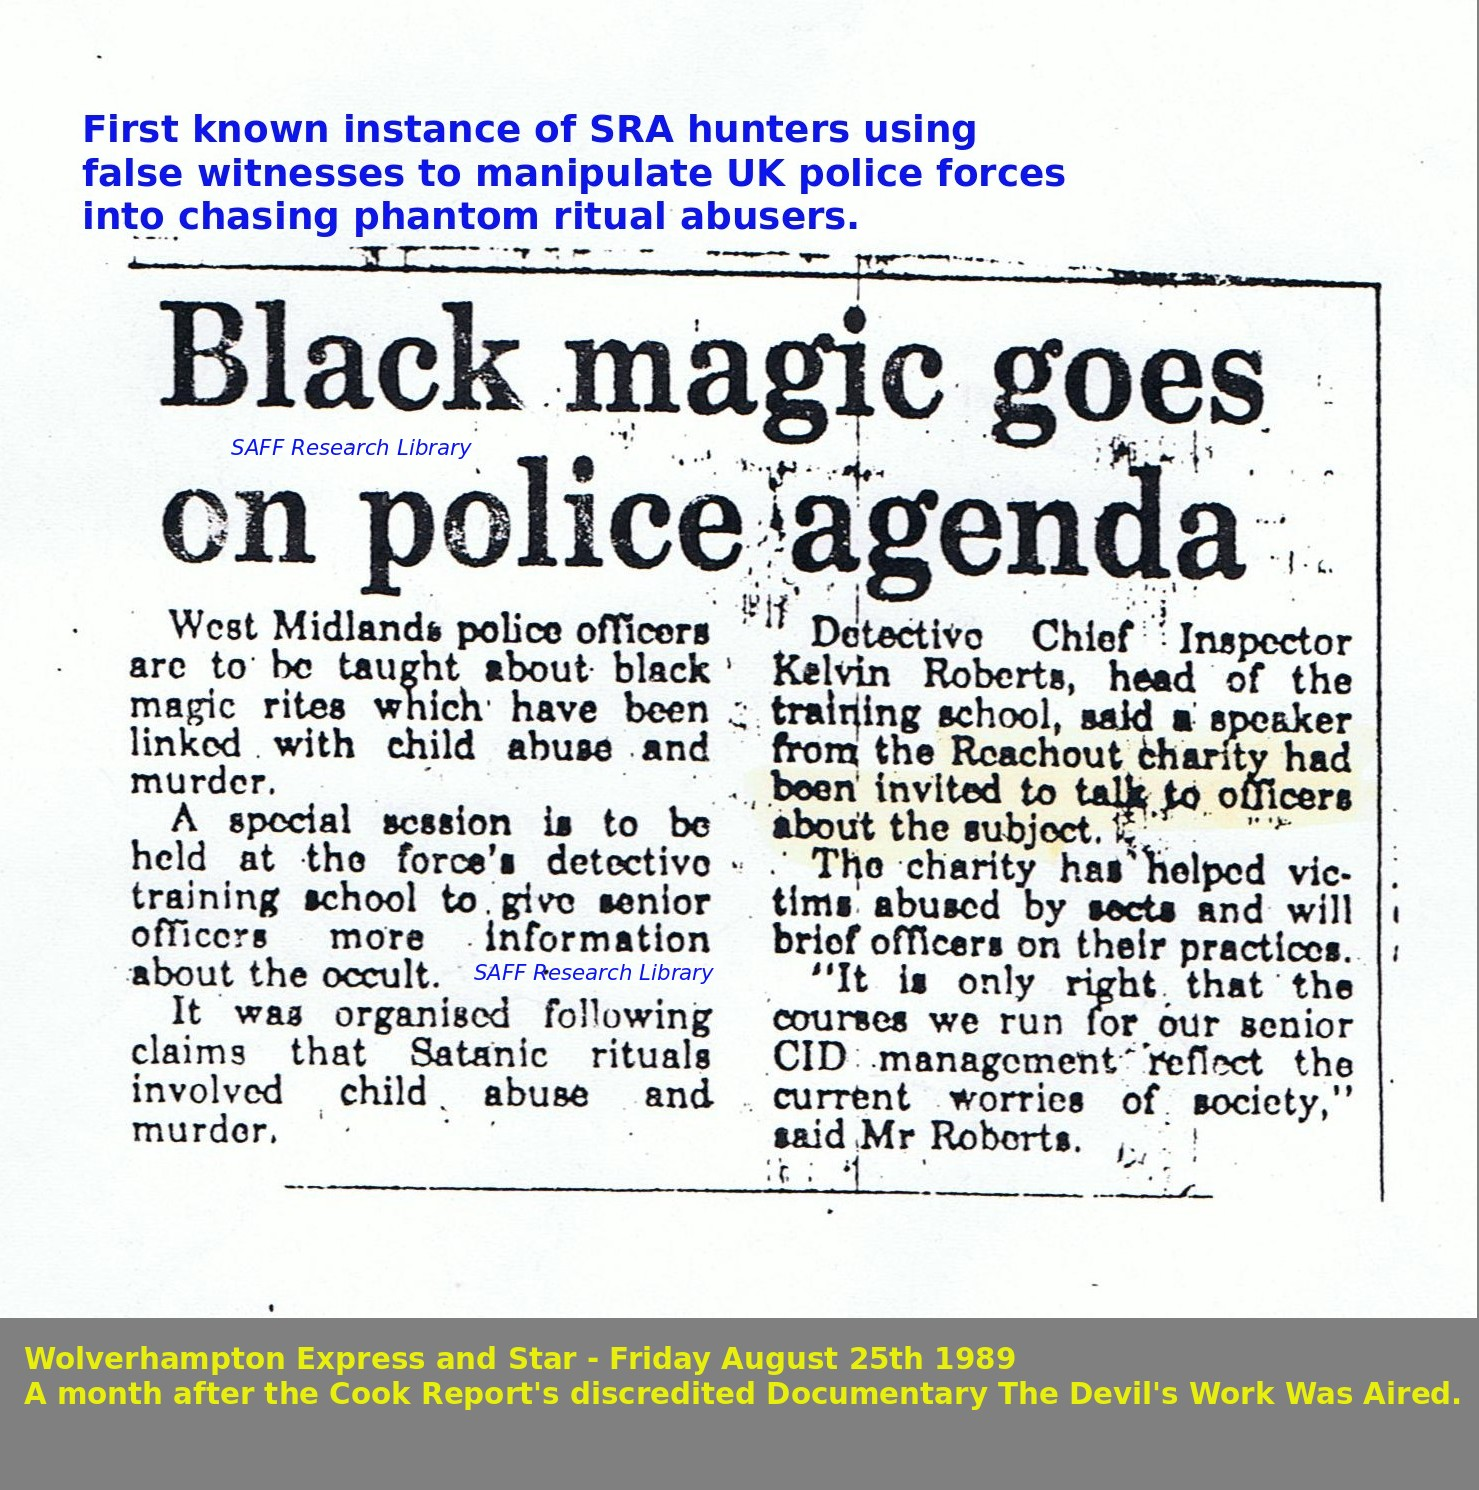 First example of Reachout Trust training stupid policemen in hunting down phantoms of Satanic Abuse